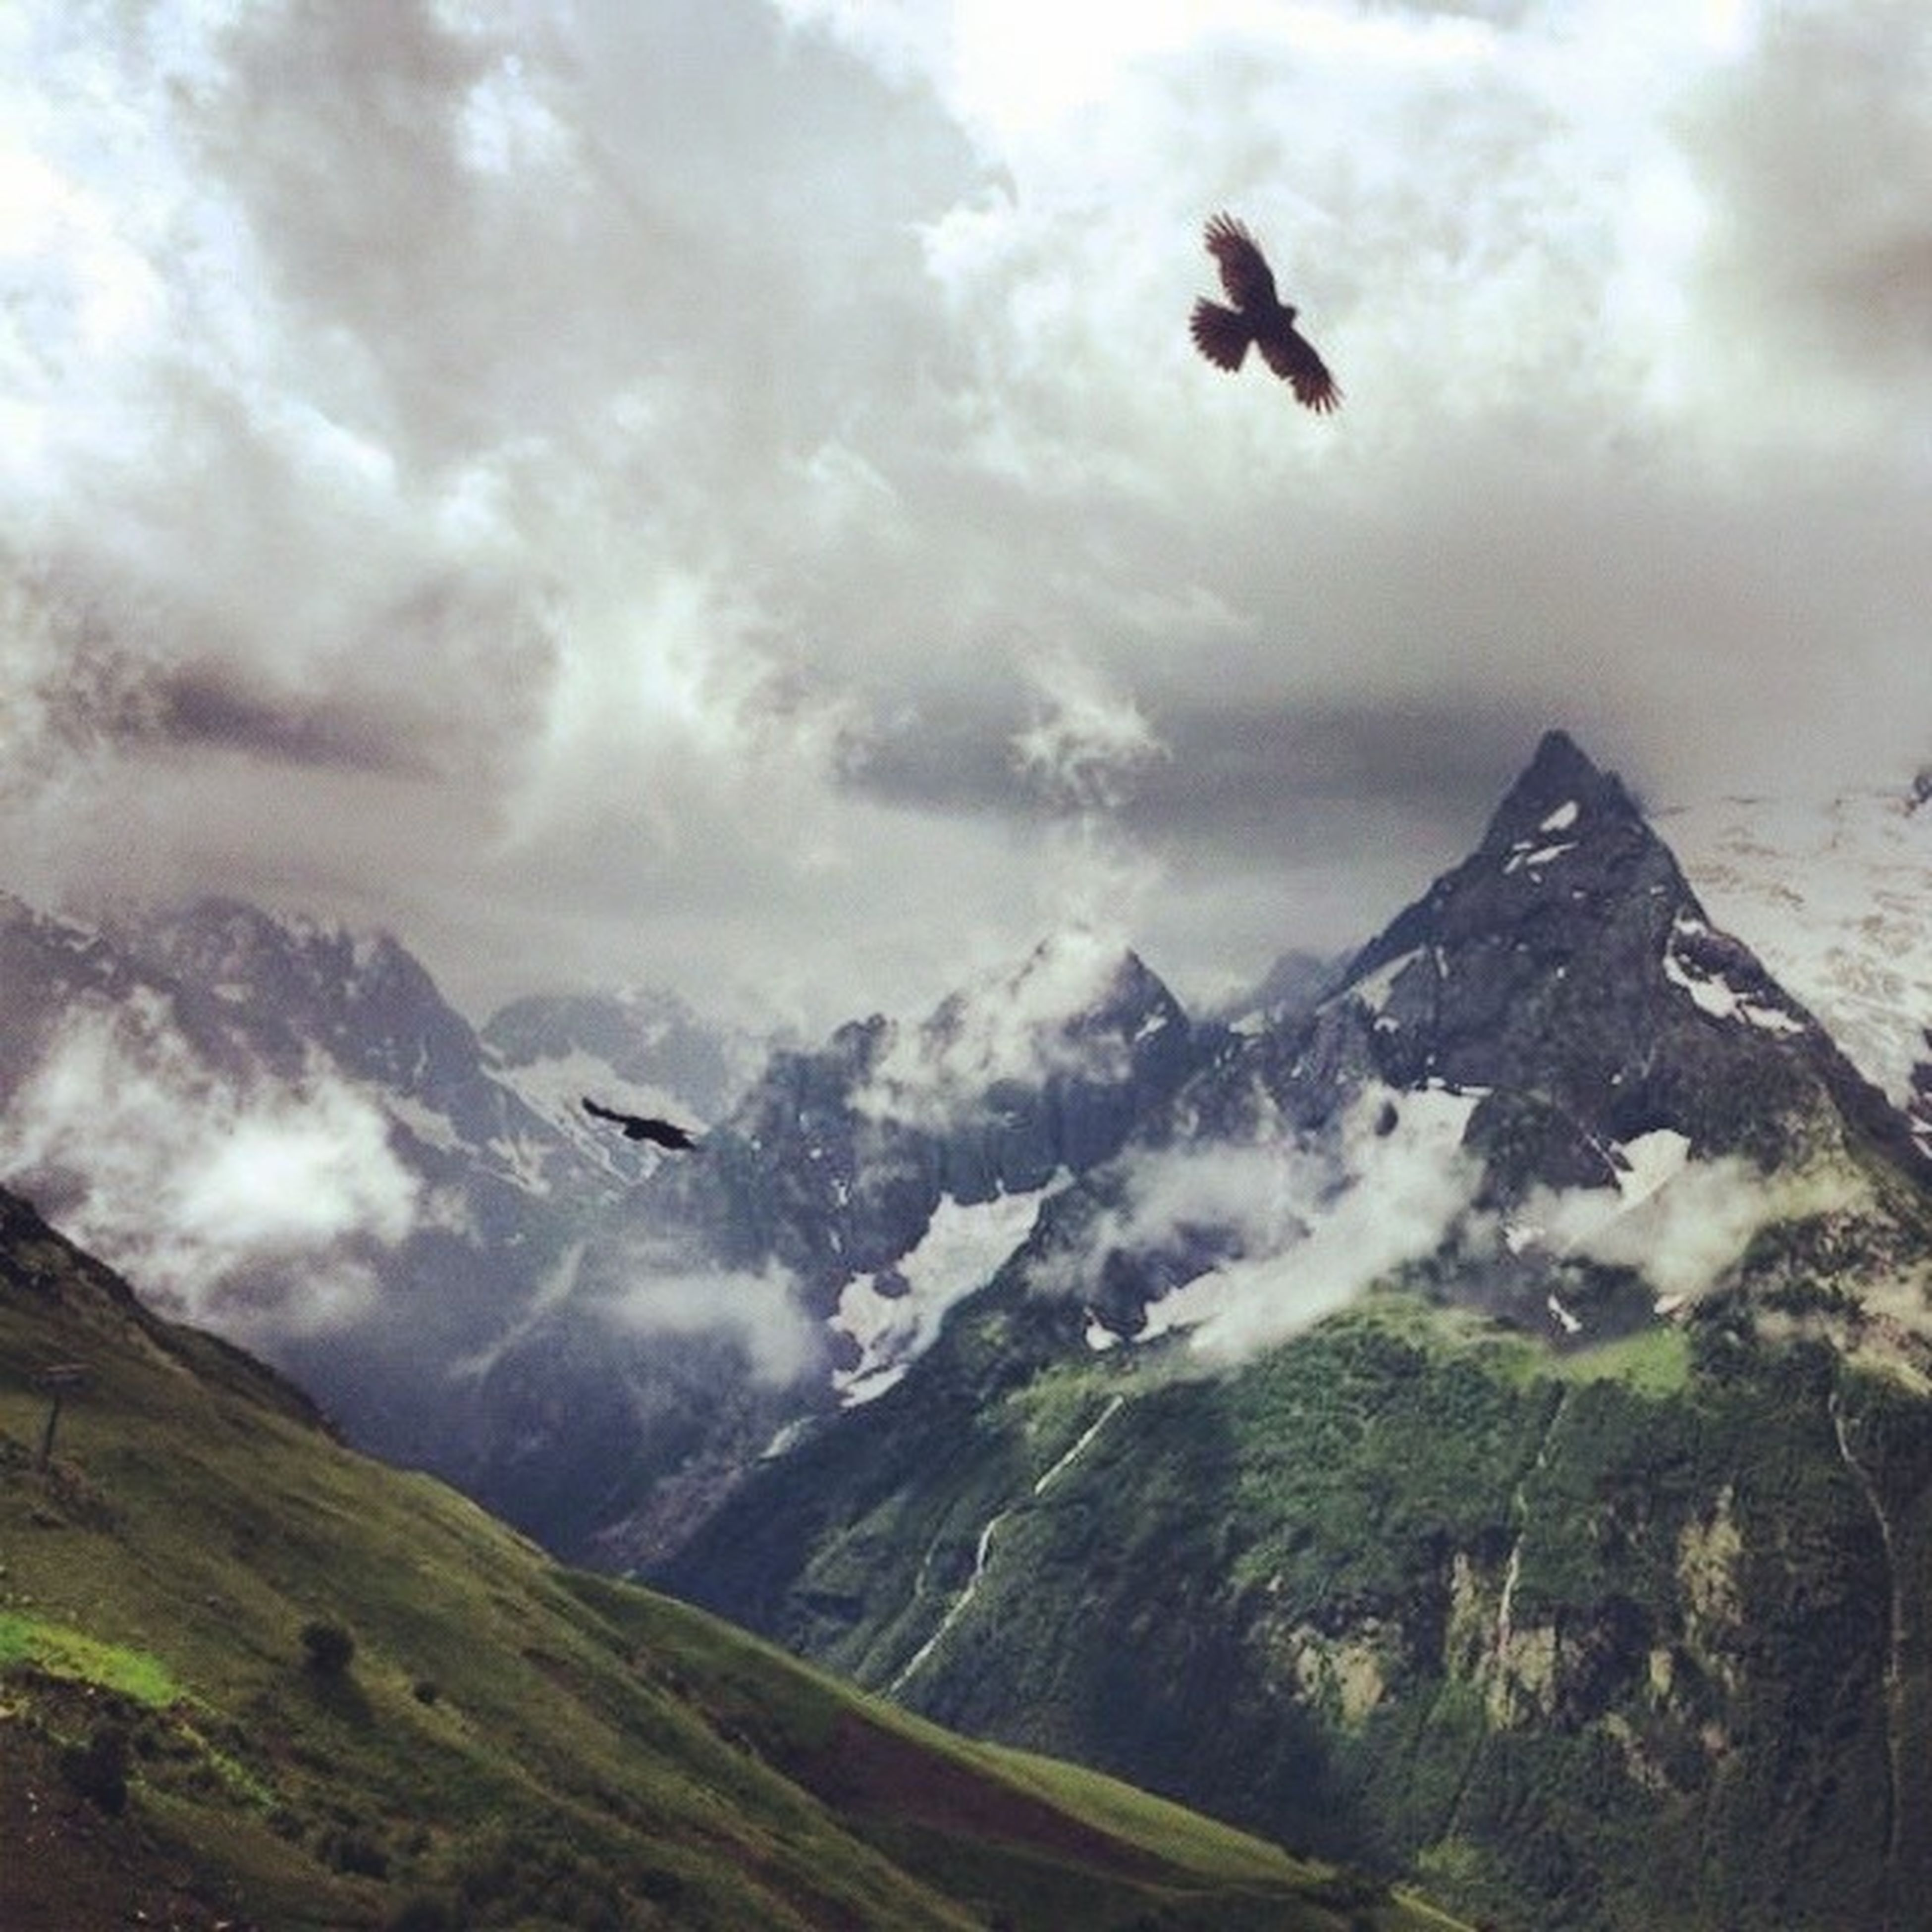 mountain, flying, sky, cloud - sky, mountain range, animal themes, scenics, landscape, bird, cloudy, mid-air, tranquil scene, nature, beauty in nature, tranquility, weather, animals in the wild, wildlife, cloud, one animal